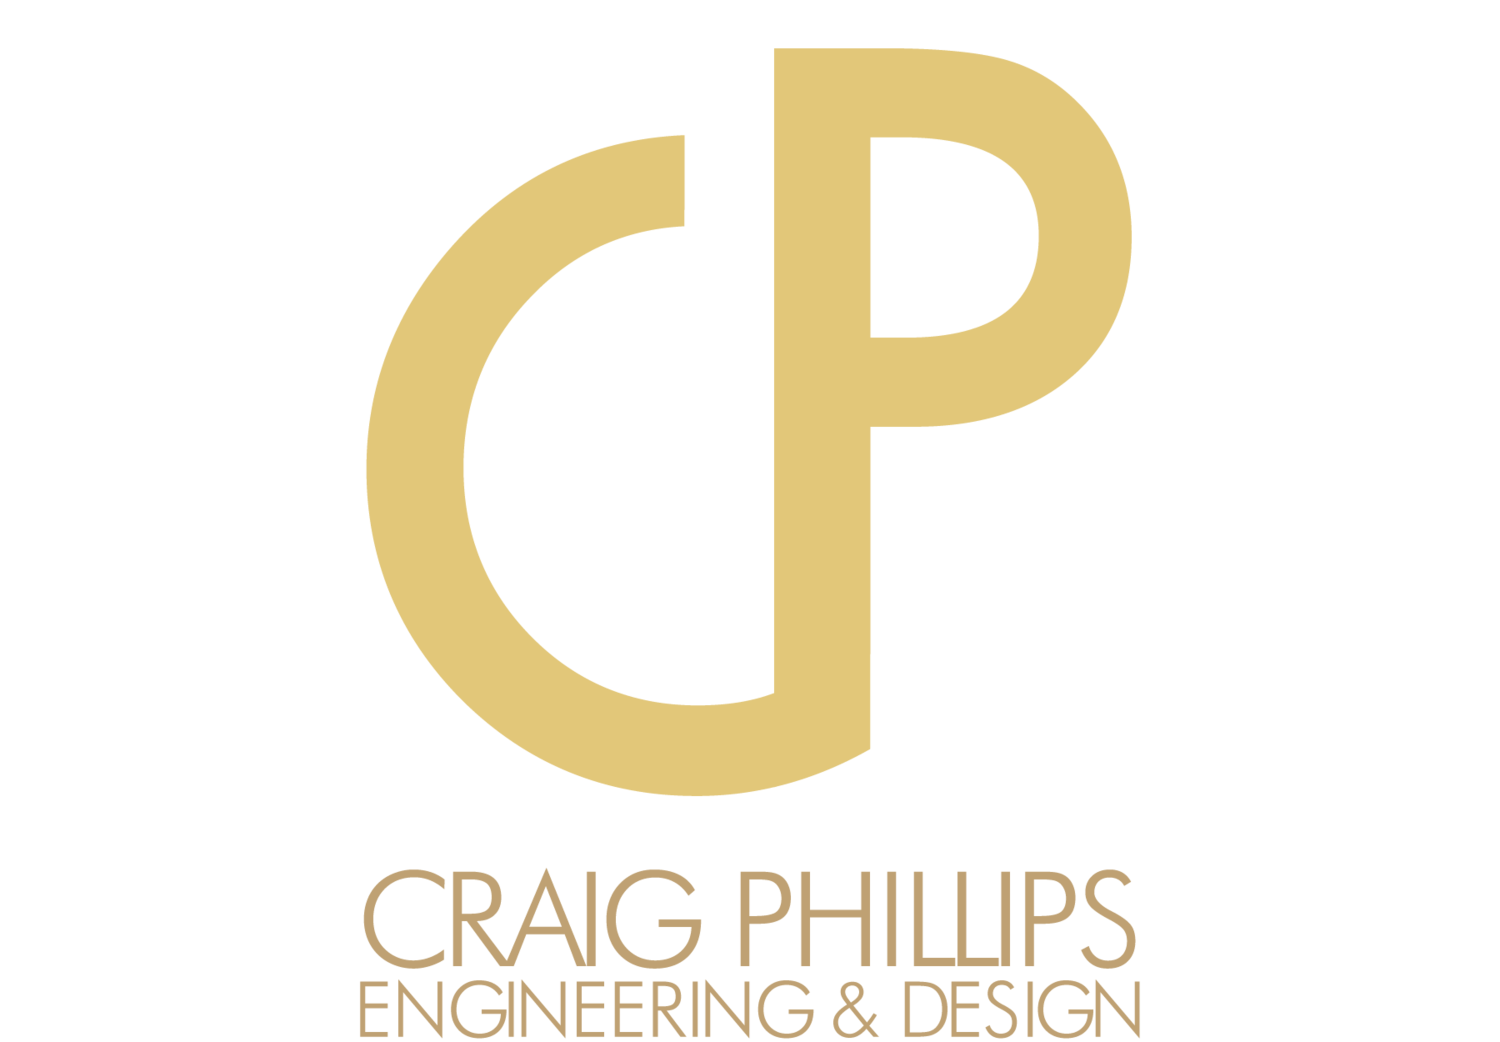 CRAIG PHILLIPS ENGINEERING AND DESIGN